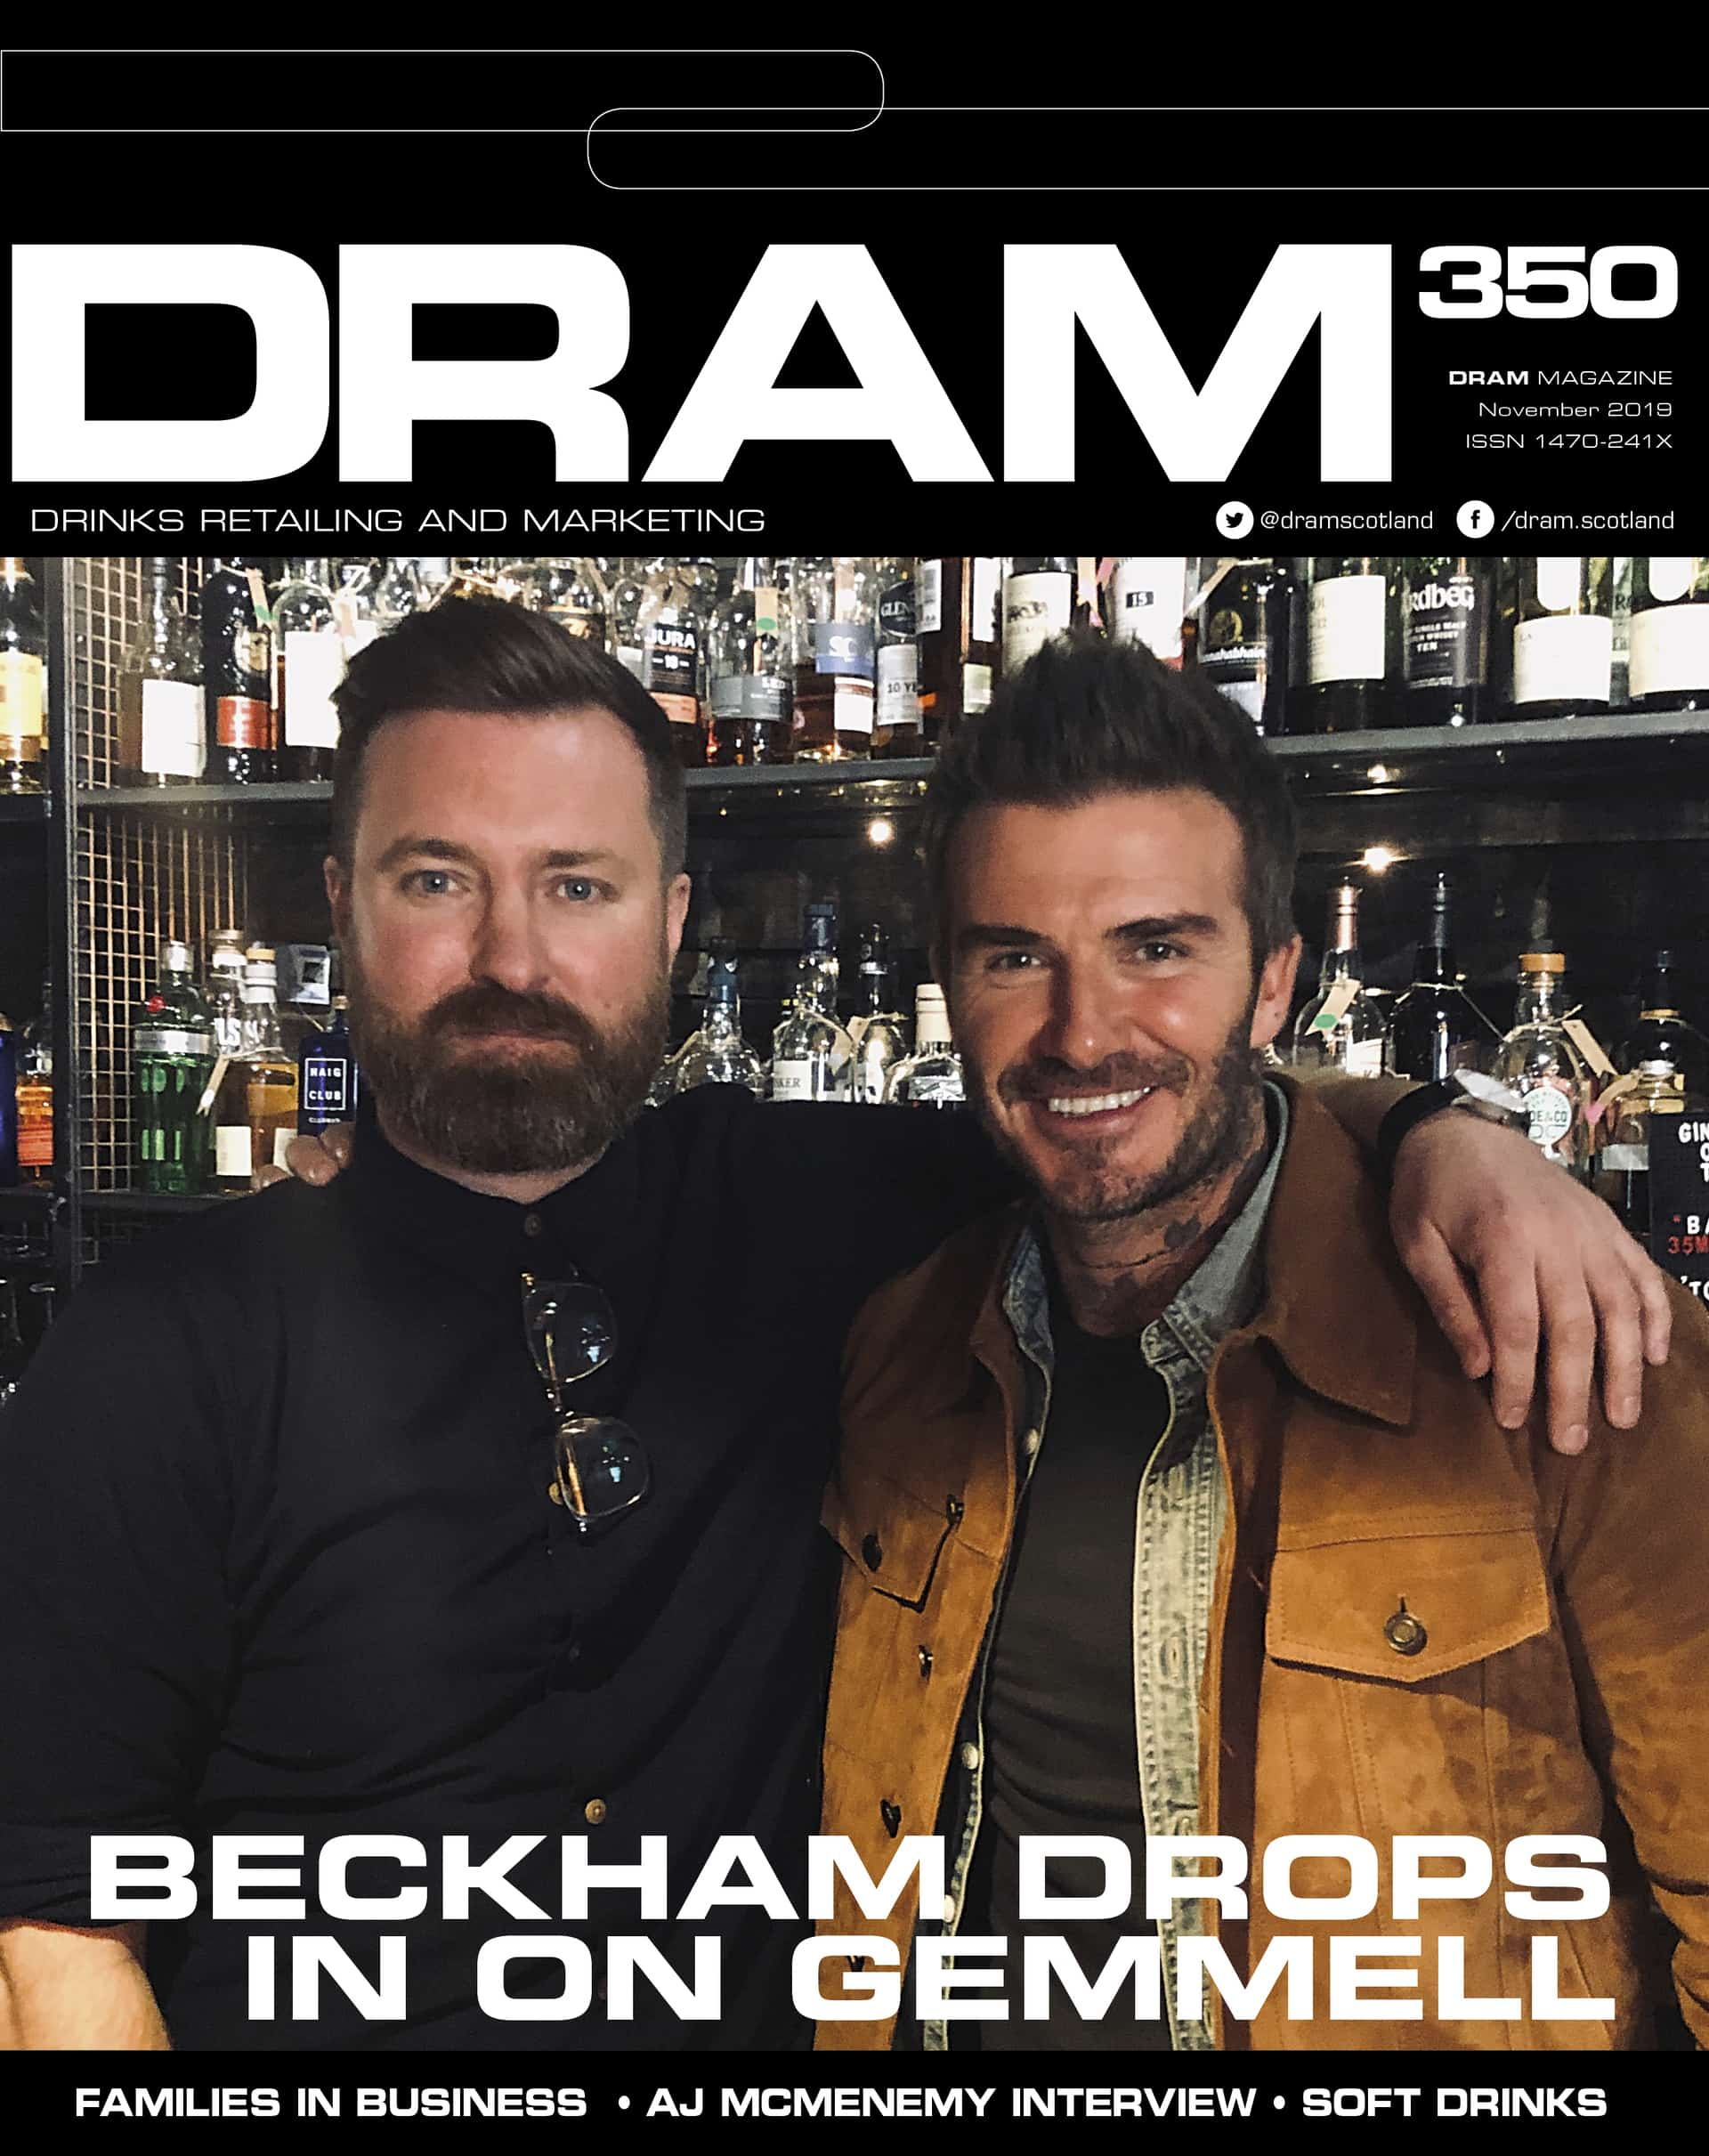 DRAM-350-November-ISSUU